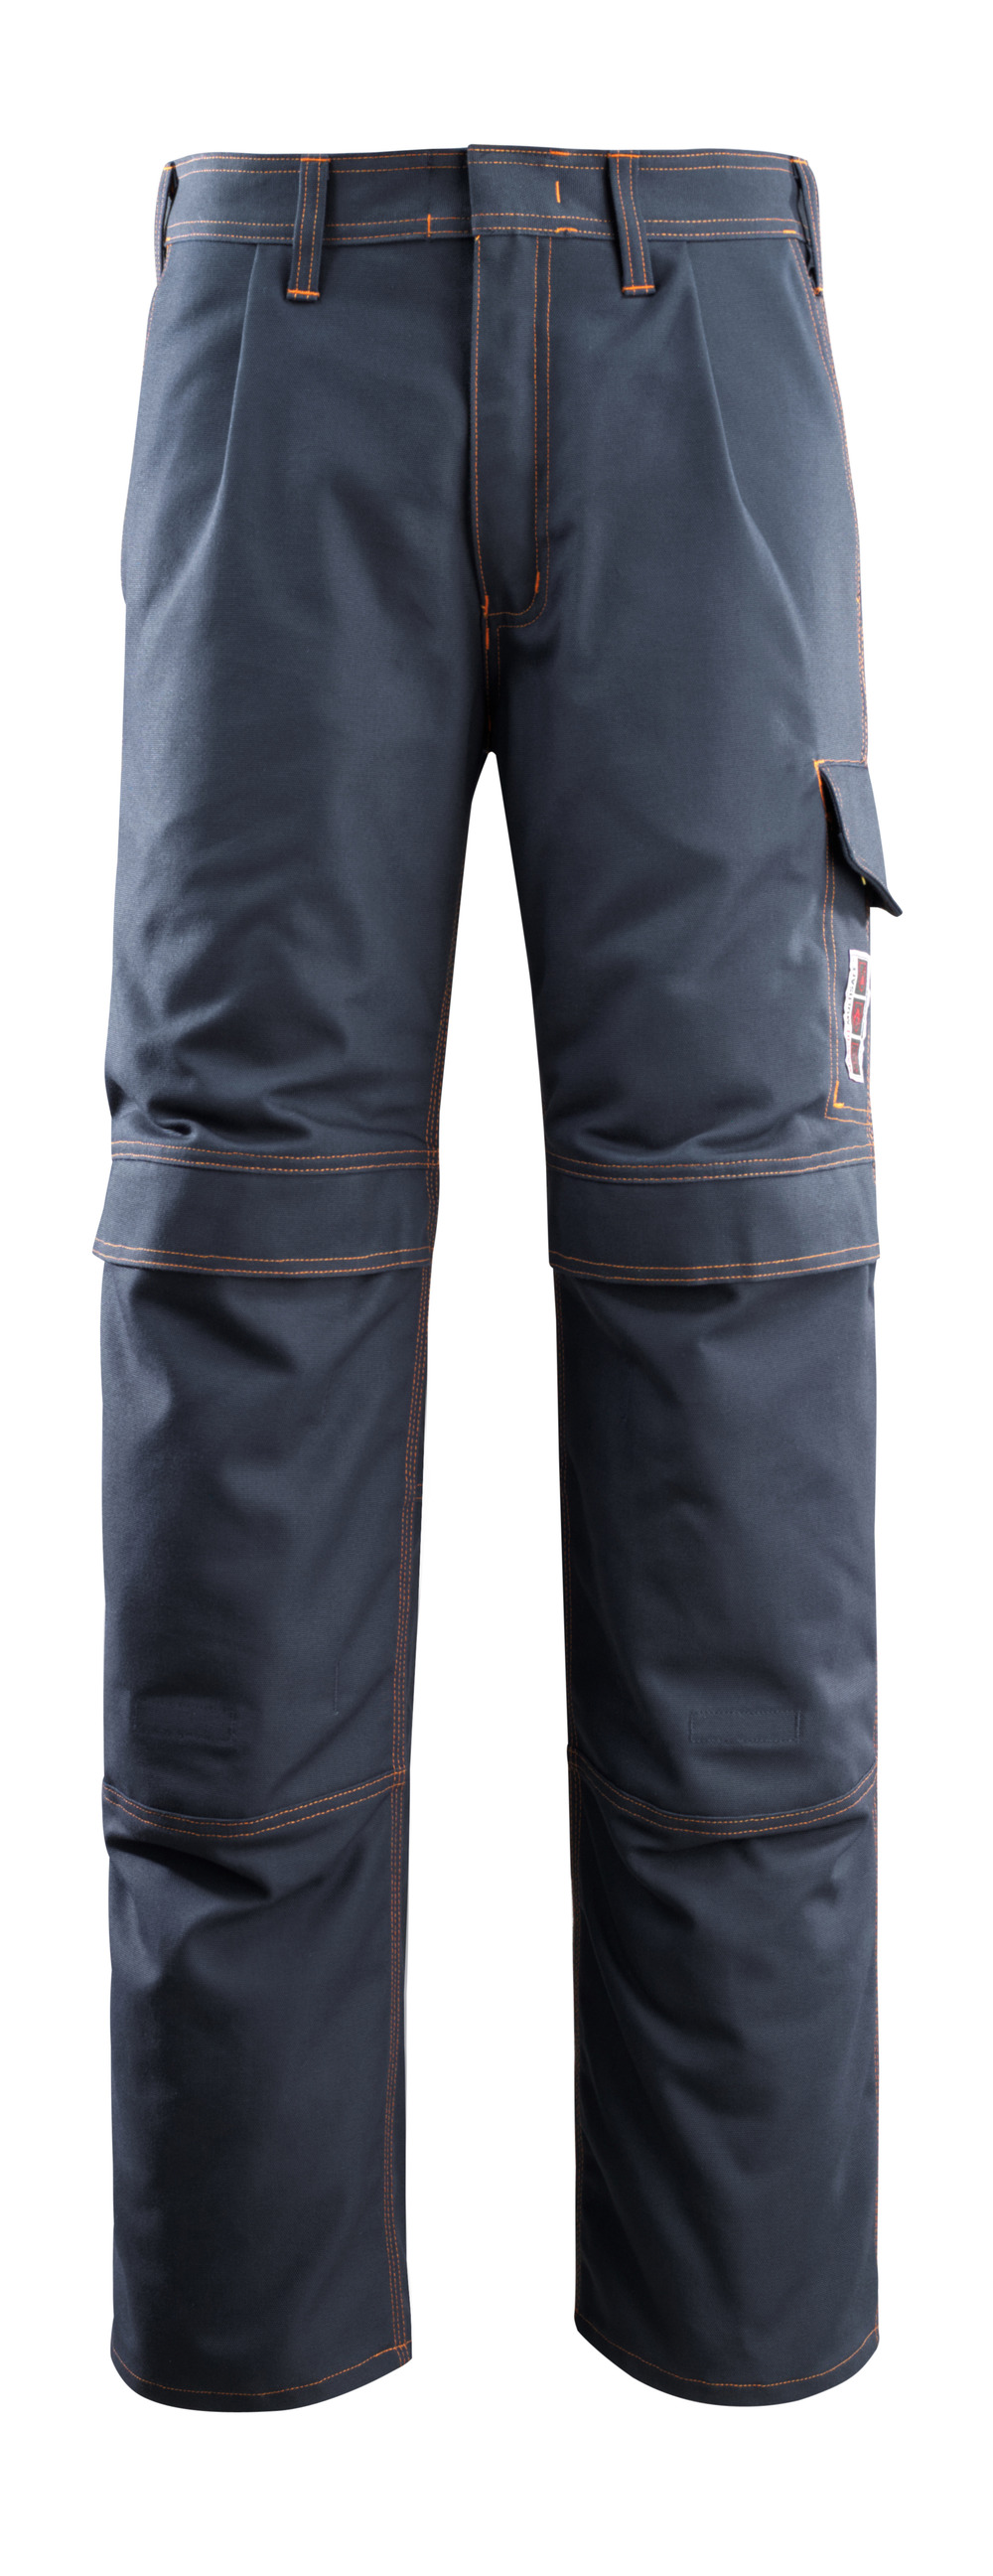 06679-135-010 Pants with kneepad pockets - dark navy